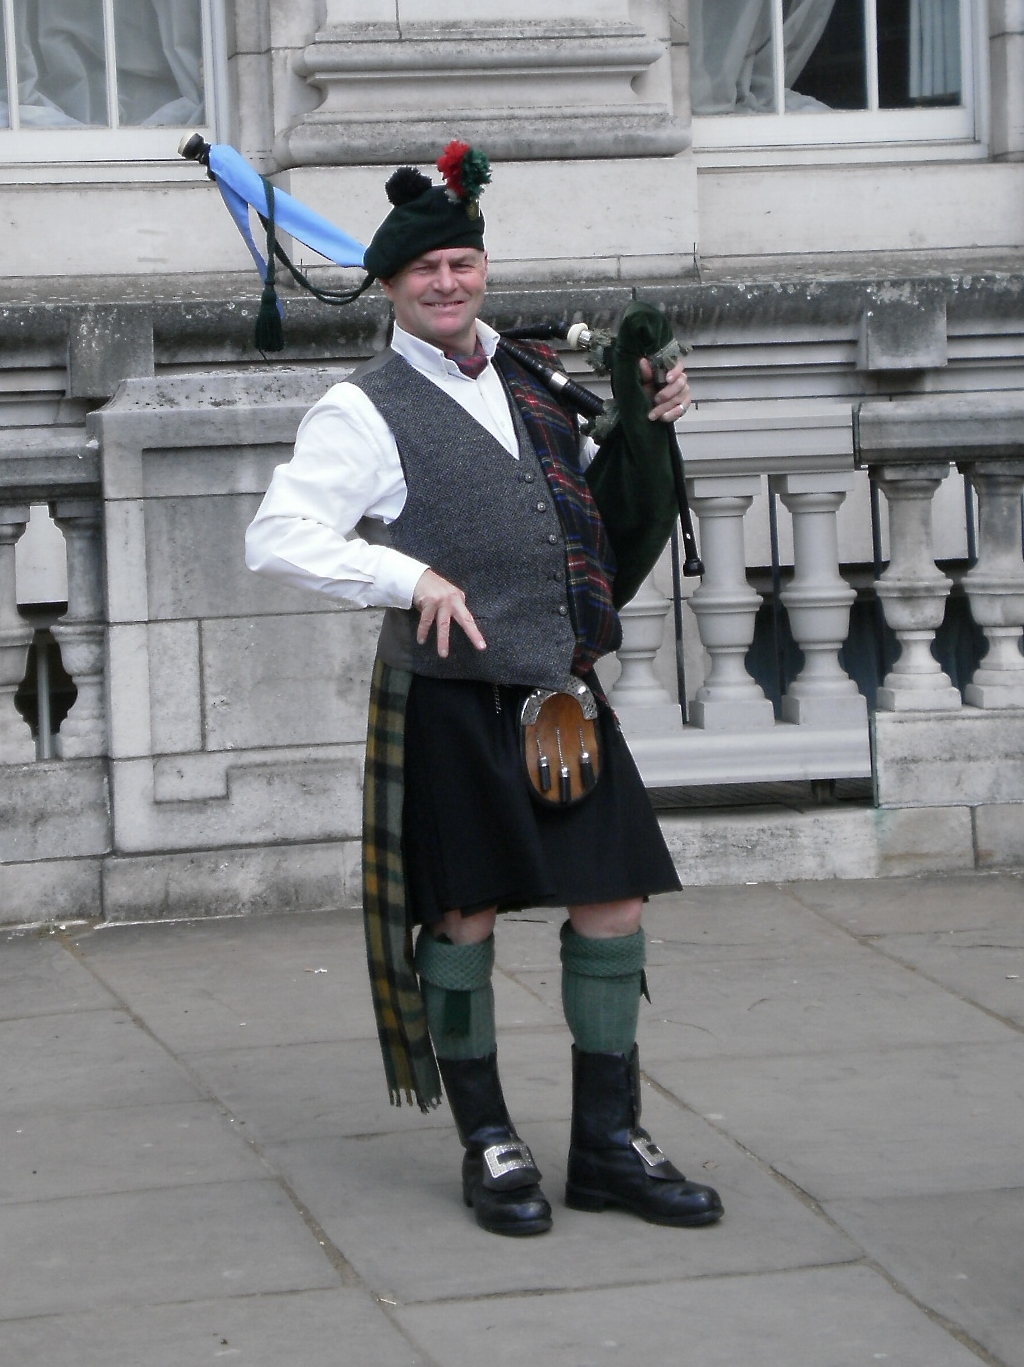 Bagpiper The Mall London